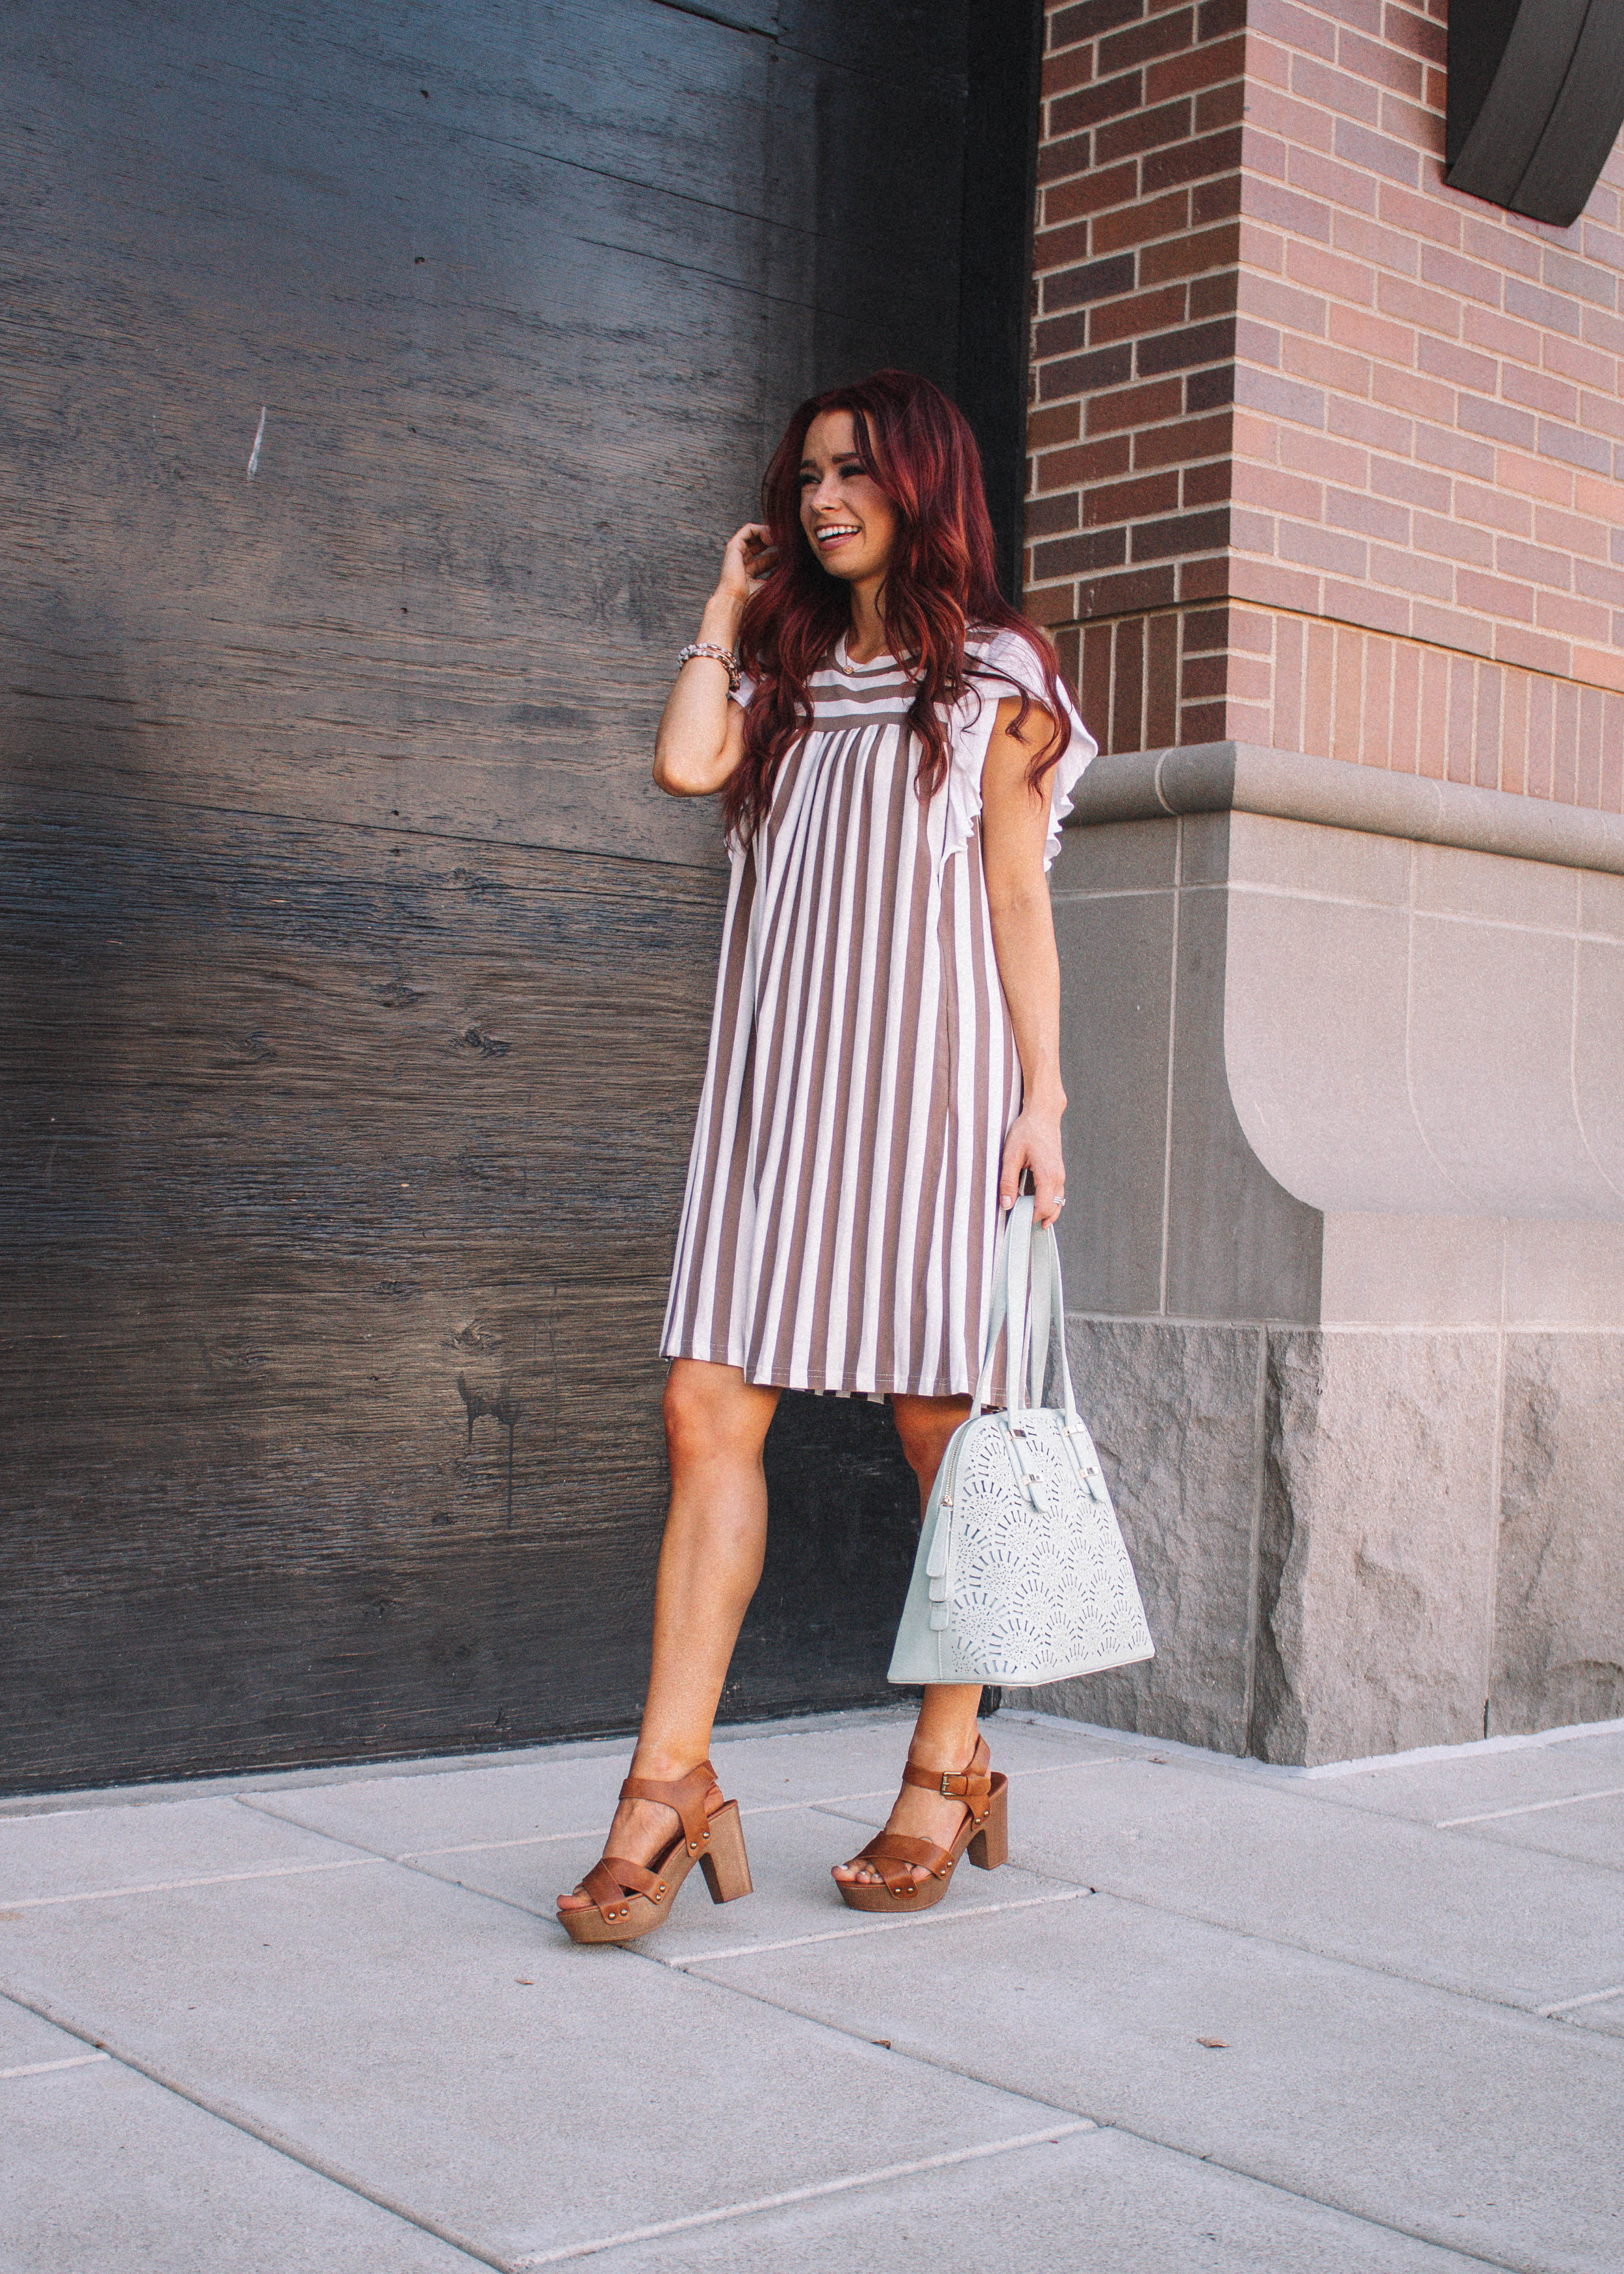 Sweet Olive Back to School Style featured by popular Indianapolis fashion blogger, Trendy in Indy